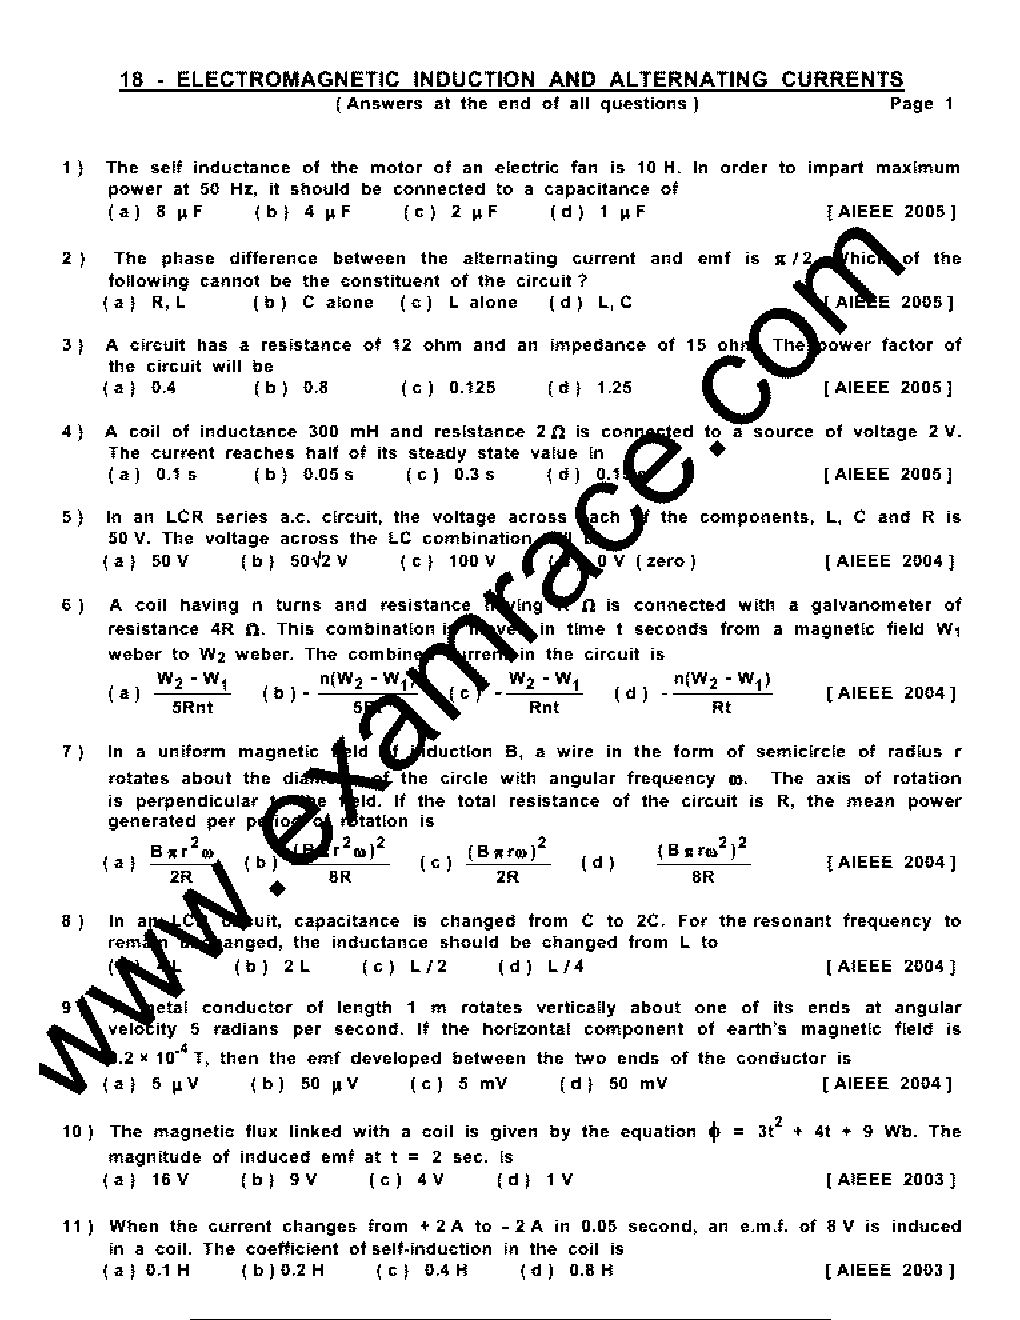 Physics ElectroMagnetic Induction MCQ- Translation in Hindi, Kannada